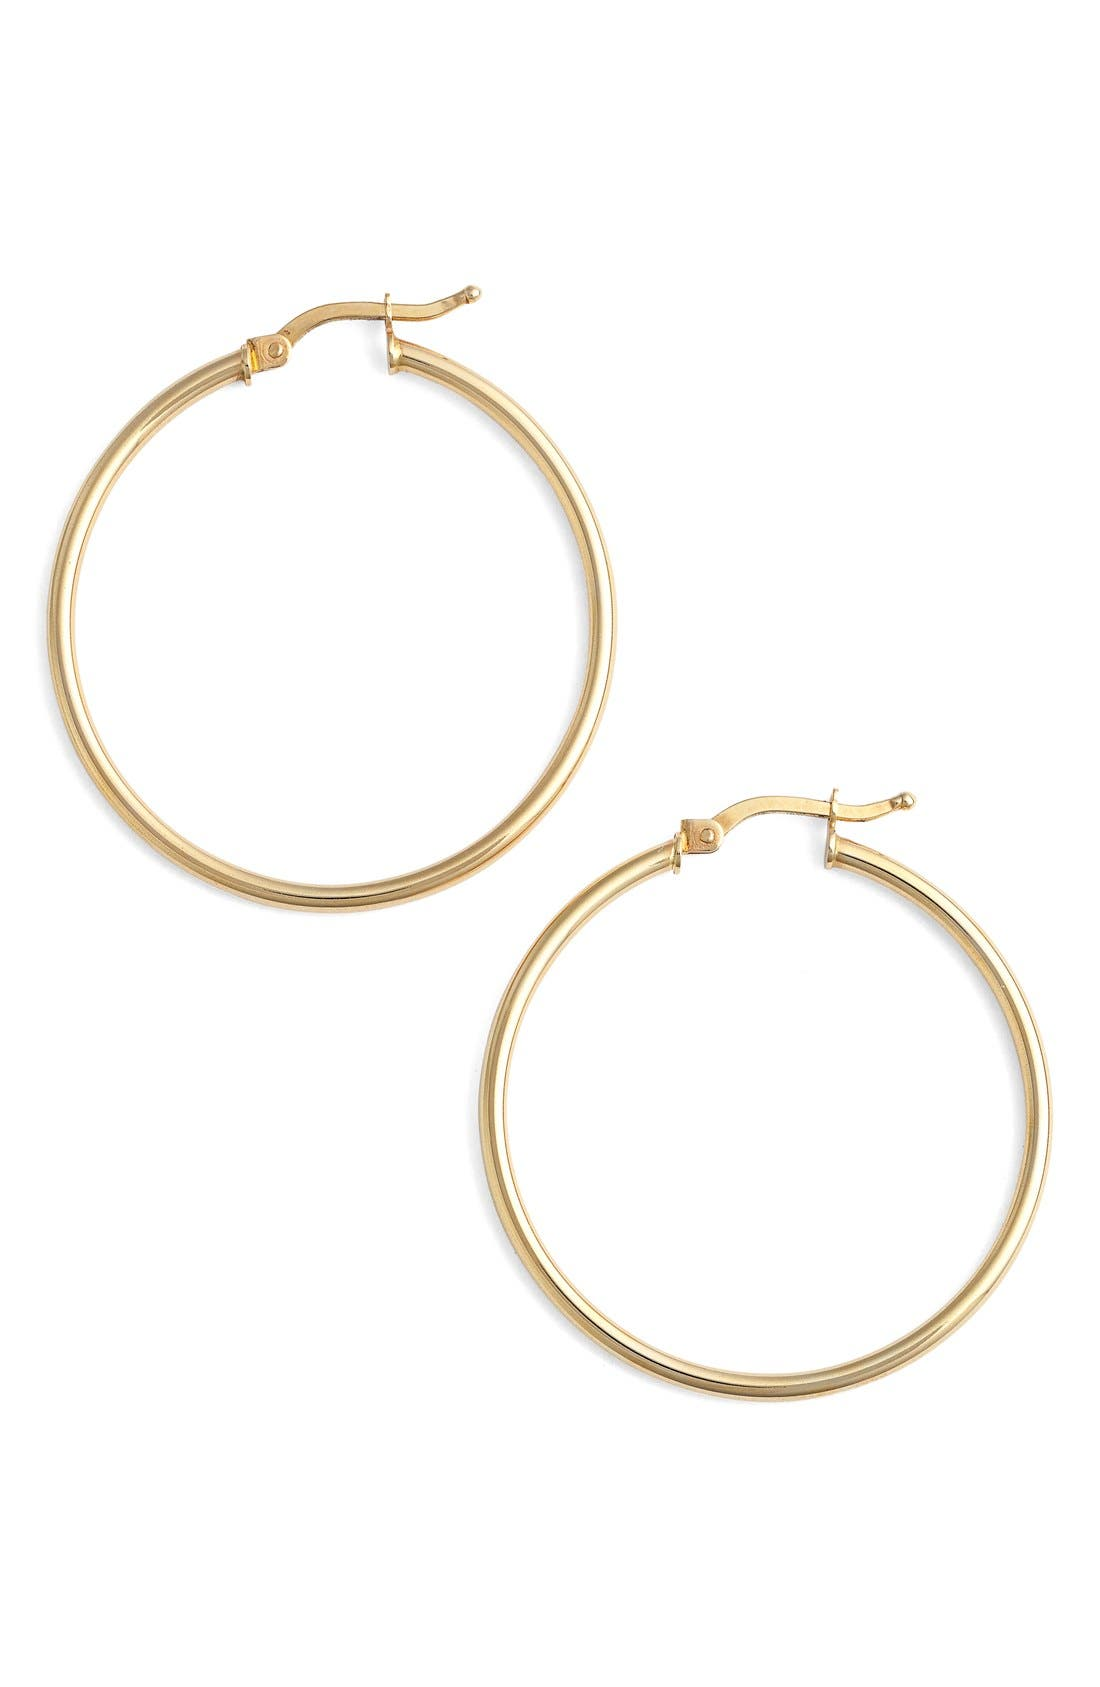 14K Gold Hoop Earrings,                         Main,                         color, YELLOW GOLD